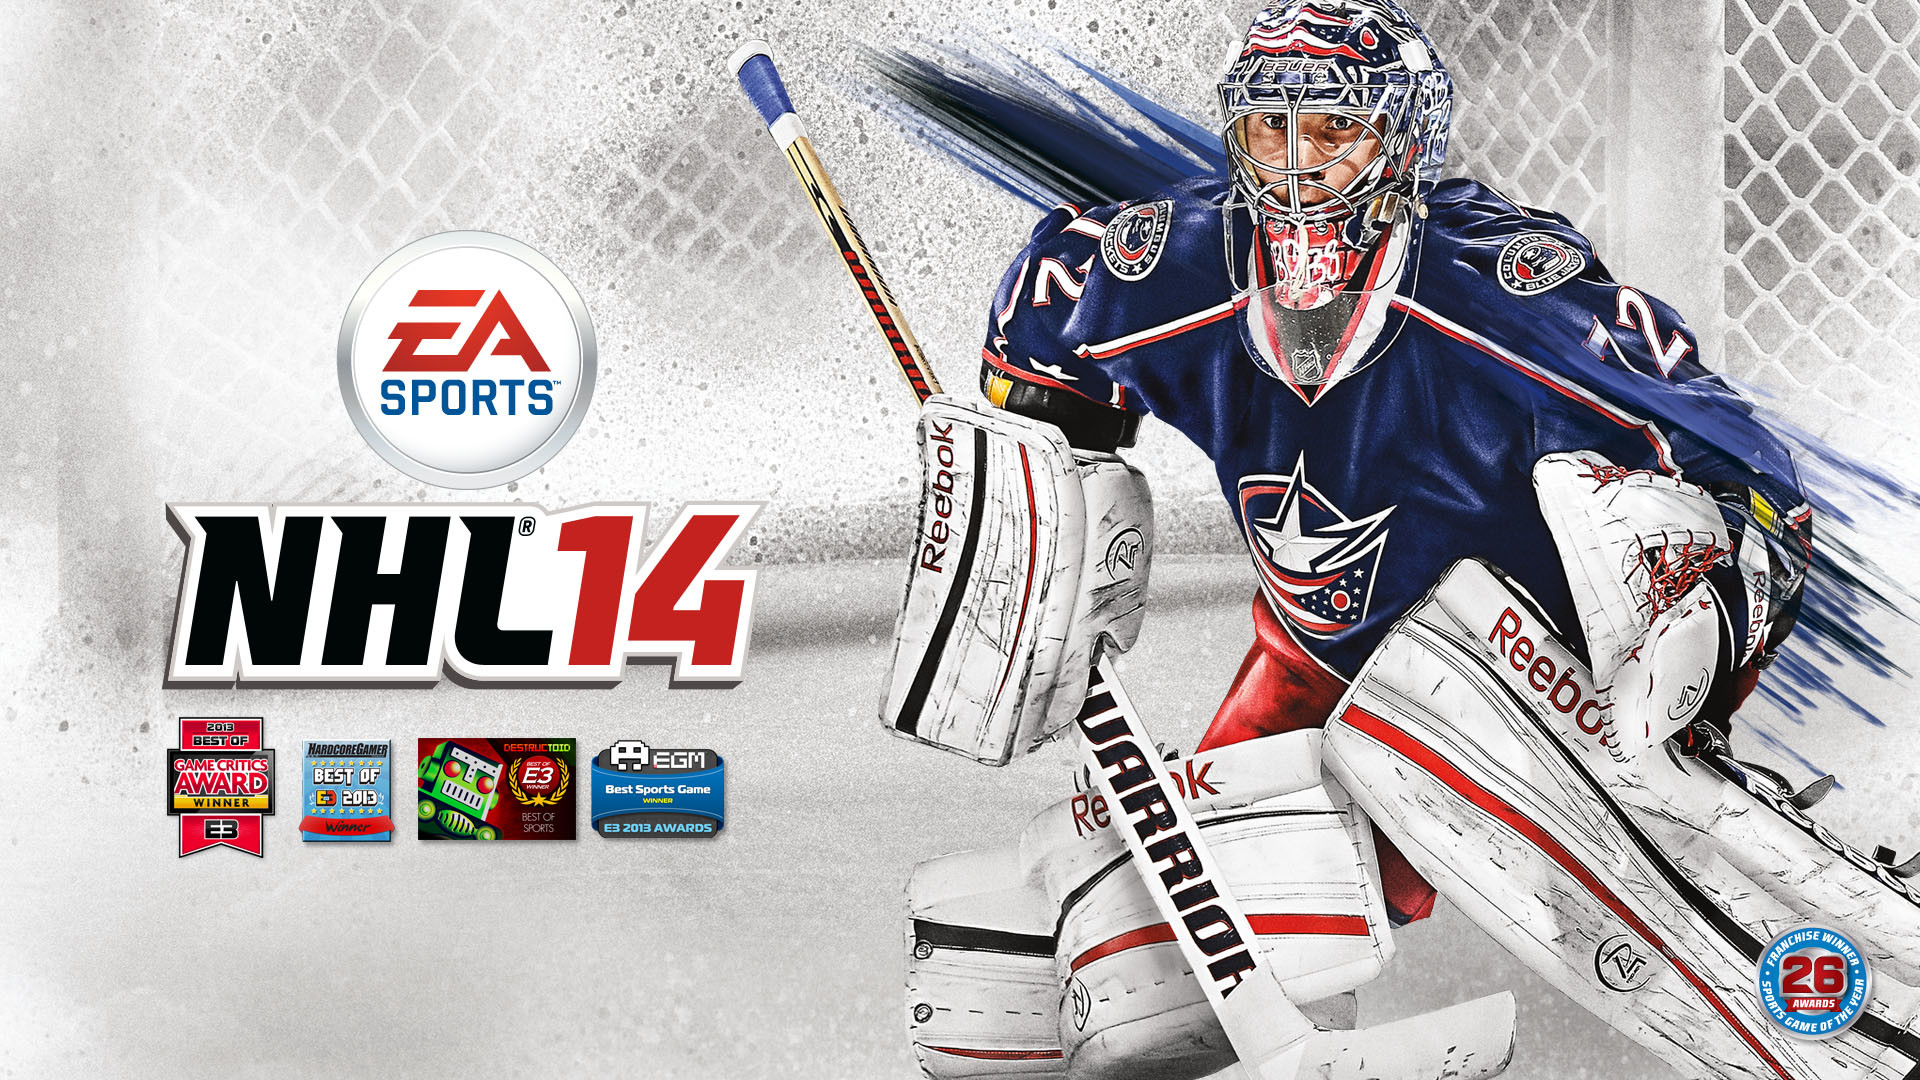 Nhl wallpapers nhl wallpapers sciox Choice Image